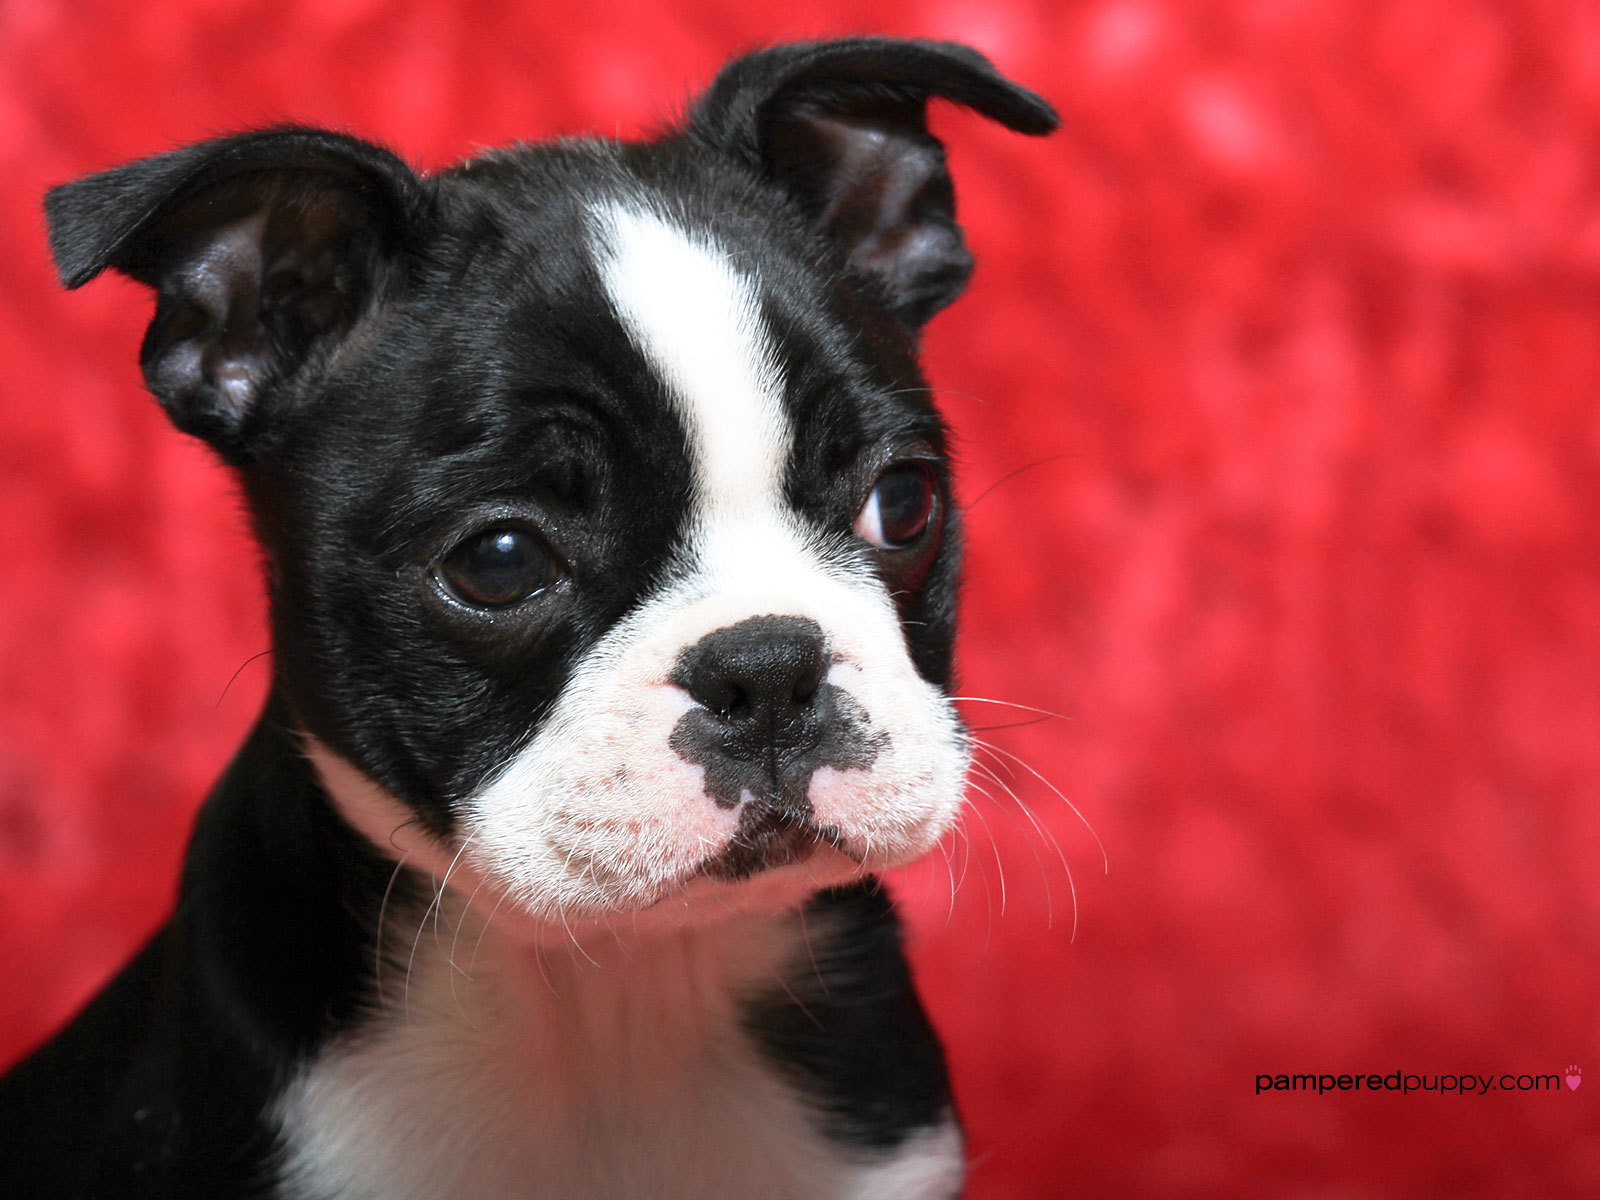 Boston Terrier puppy - Dogs Wallpaper (13518448) - Fanpop fanclubs